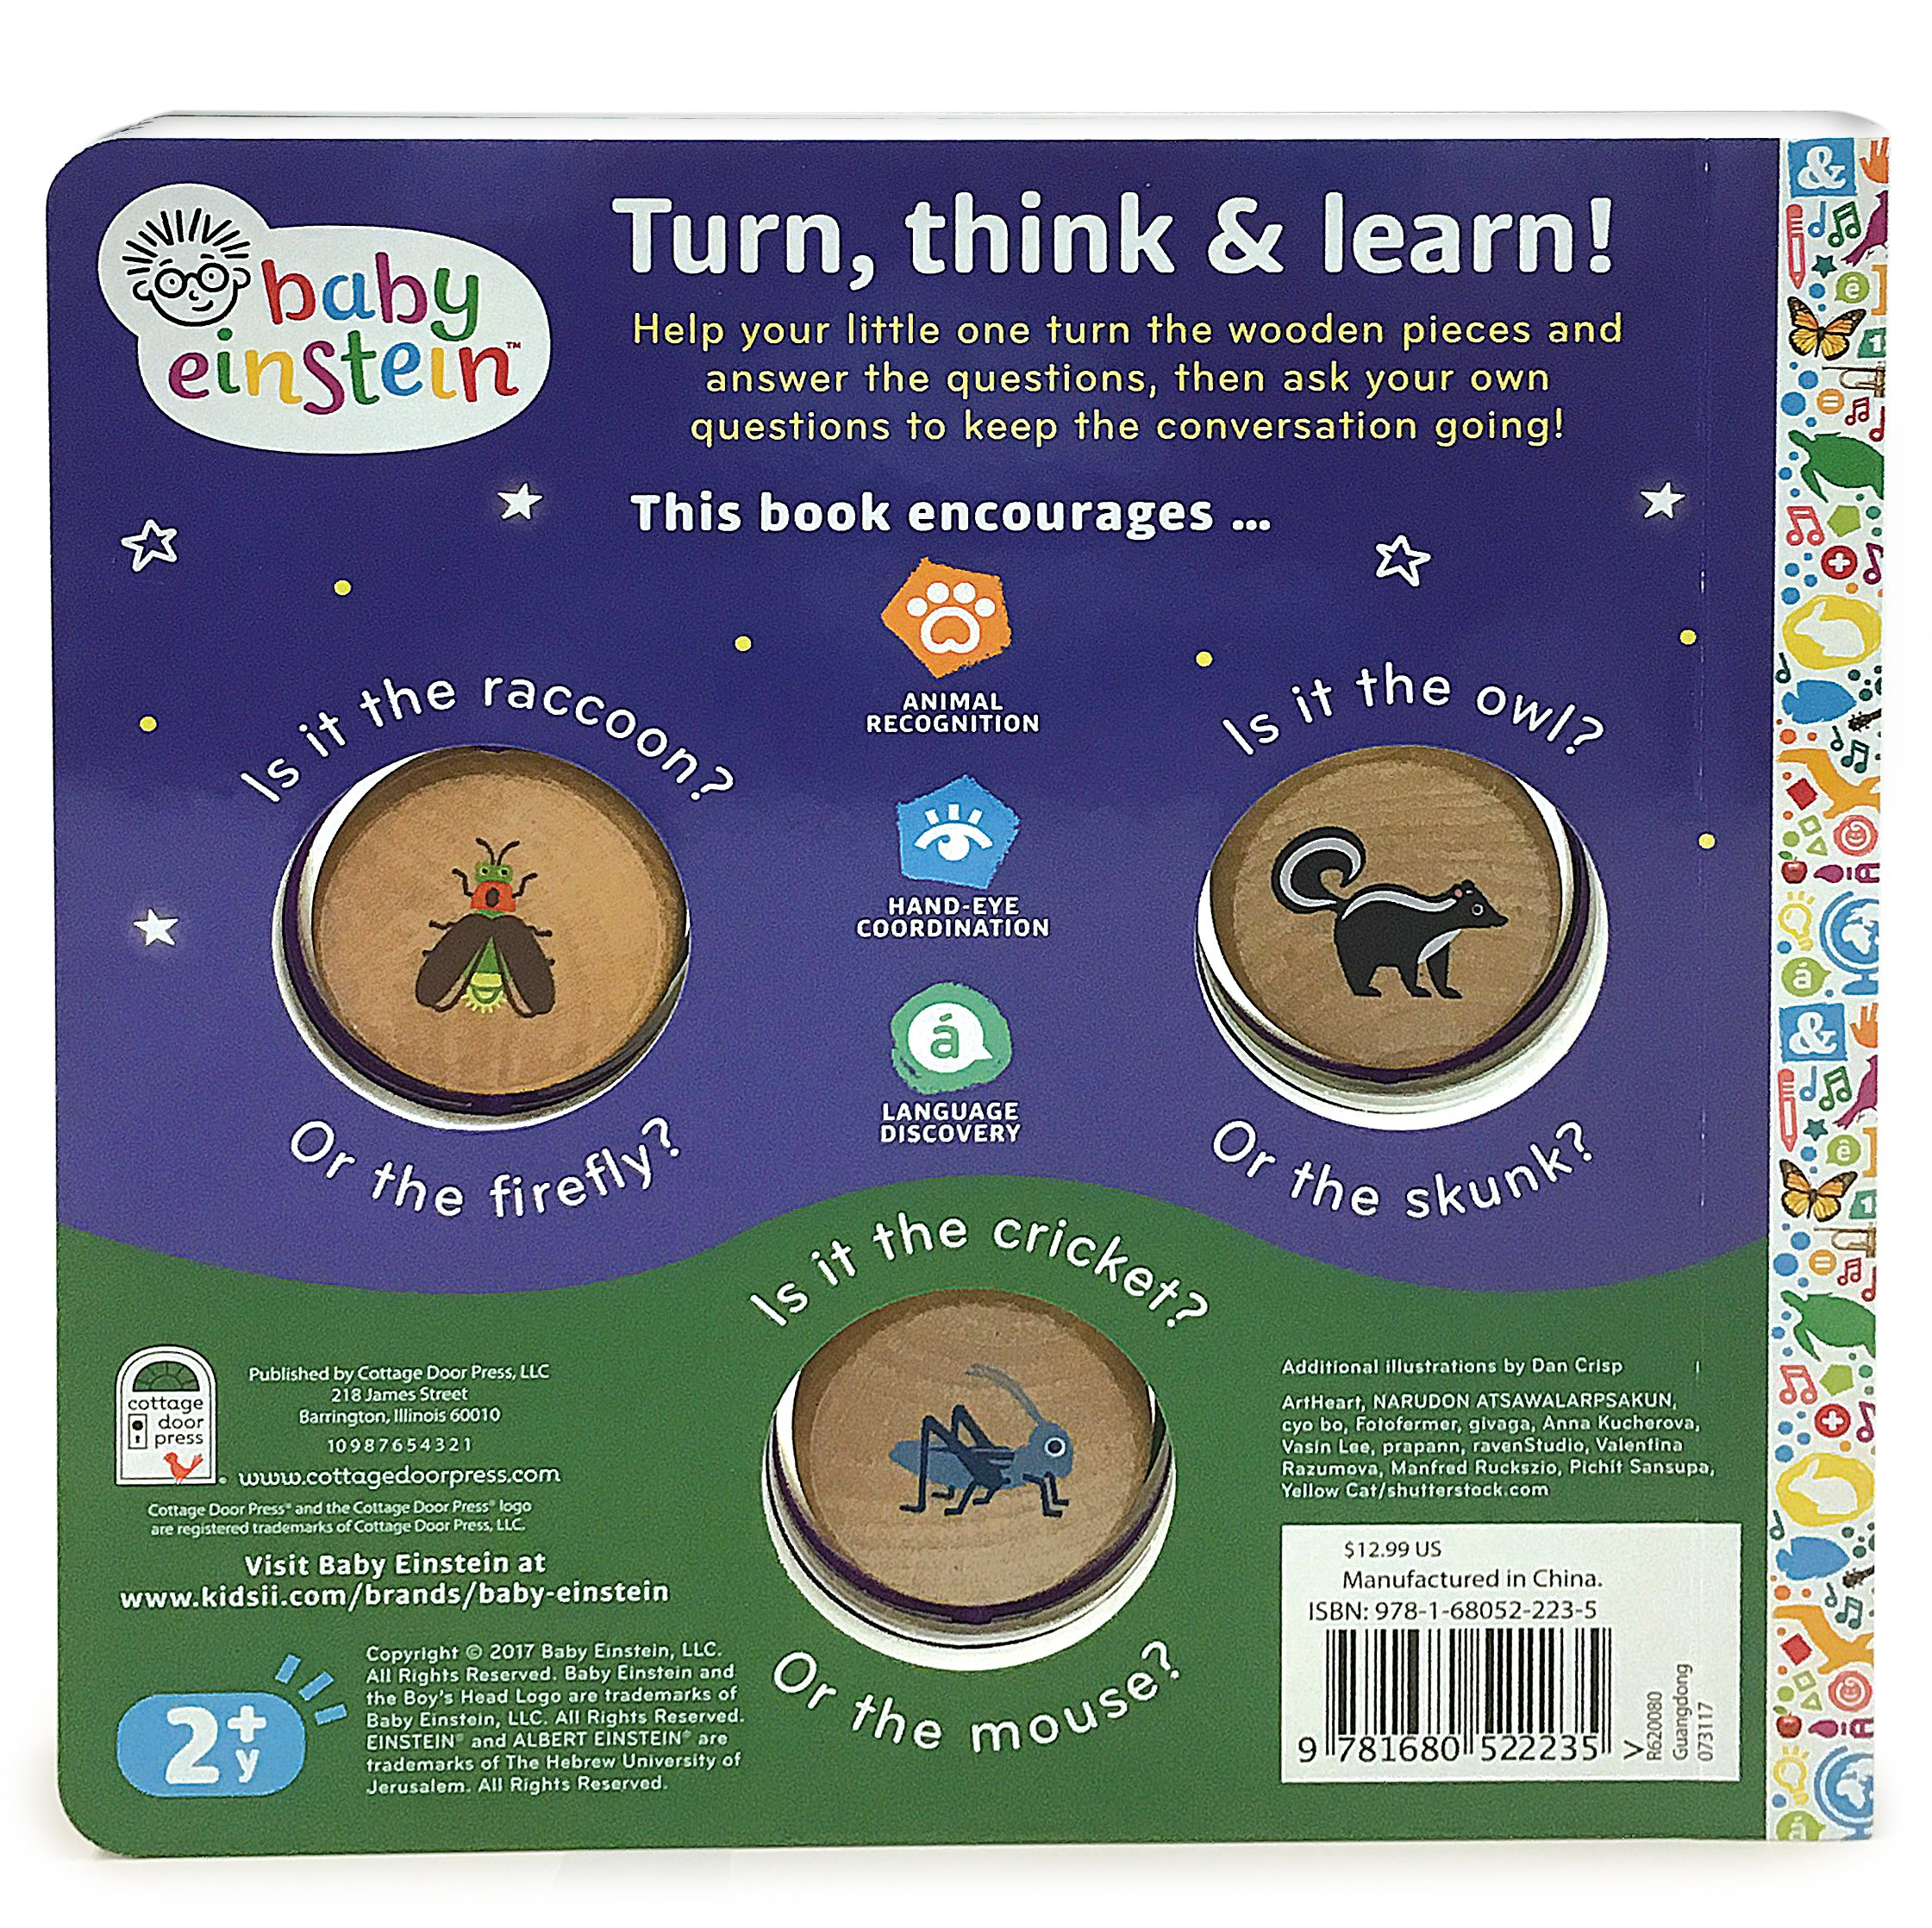 Baby einstein under the starsturn learn board book baby baby einstein under the starsturn learn board book baby einstein turn learn minnie birdsong dan crisp 9781680522235 amazon books fandeluxe Gallery